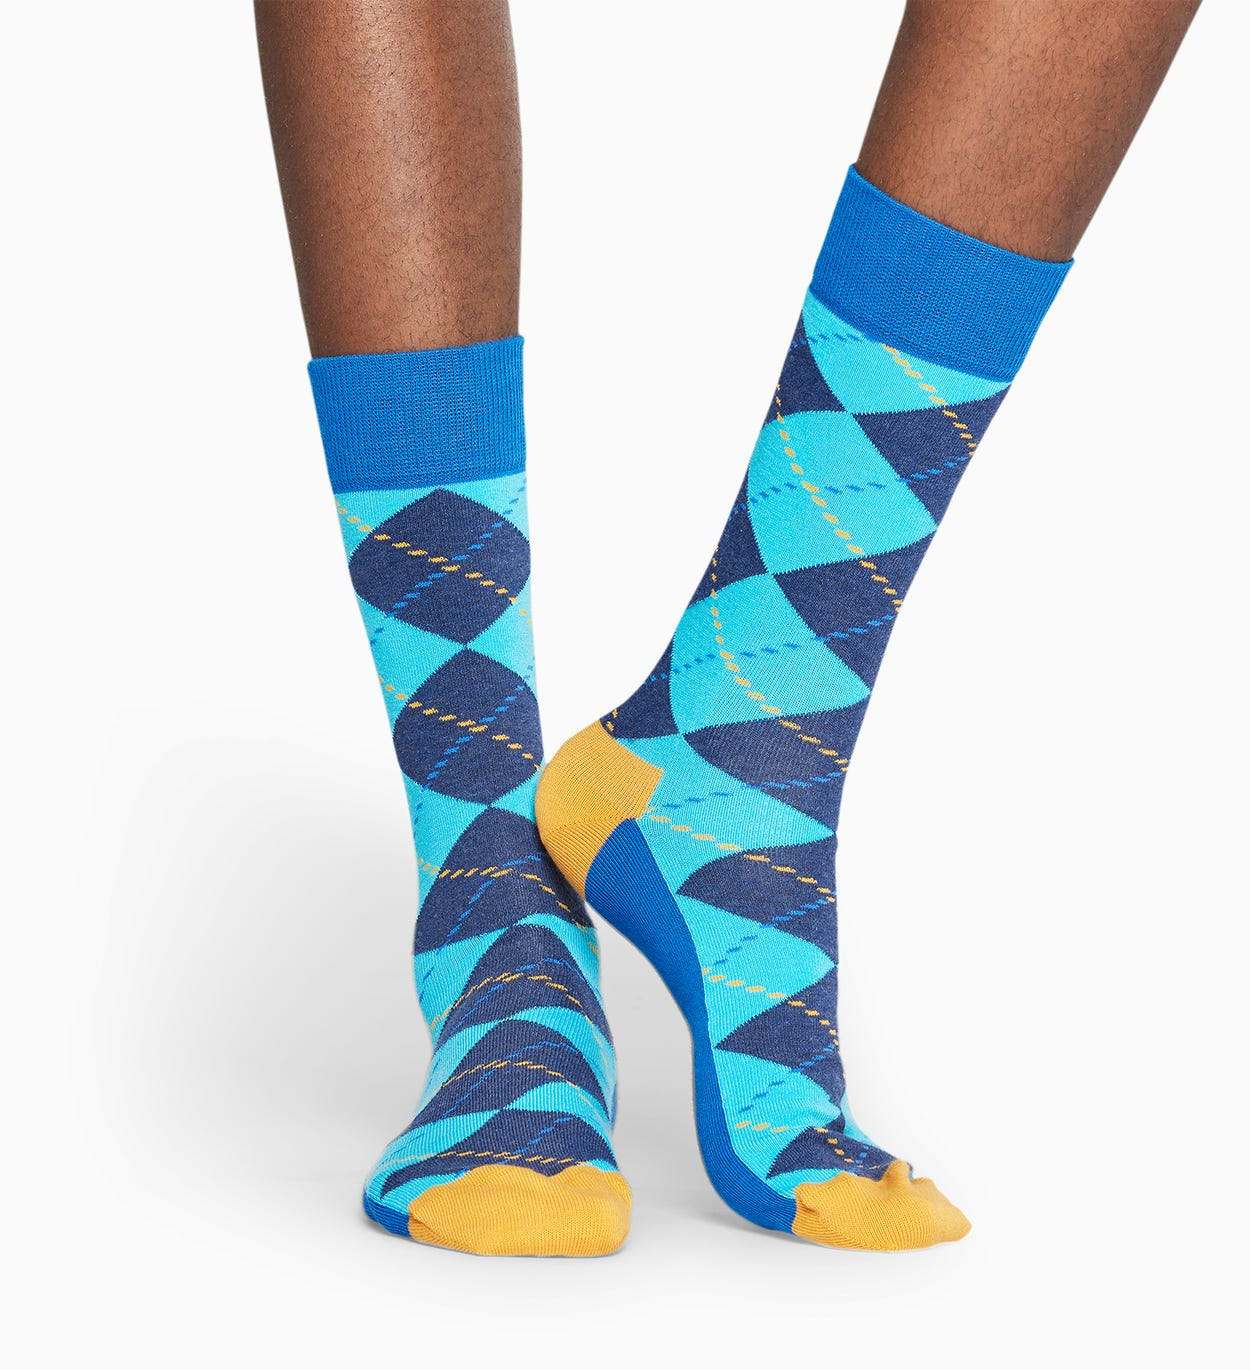 Blue socks: Argyle pattern | Happy Socks